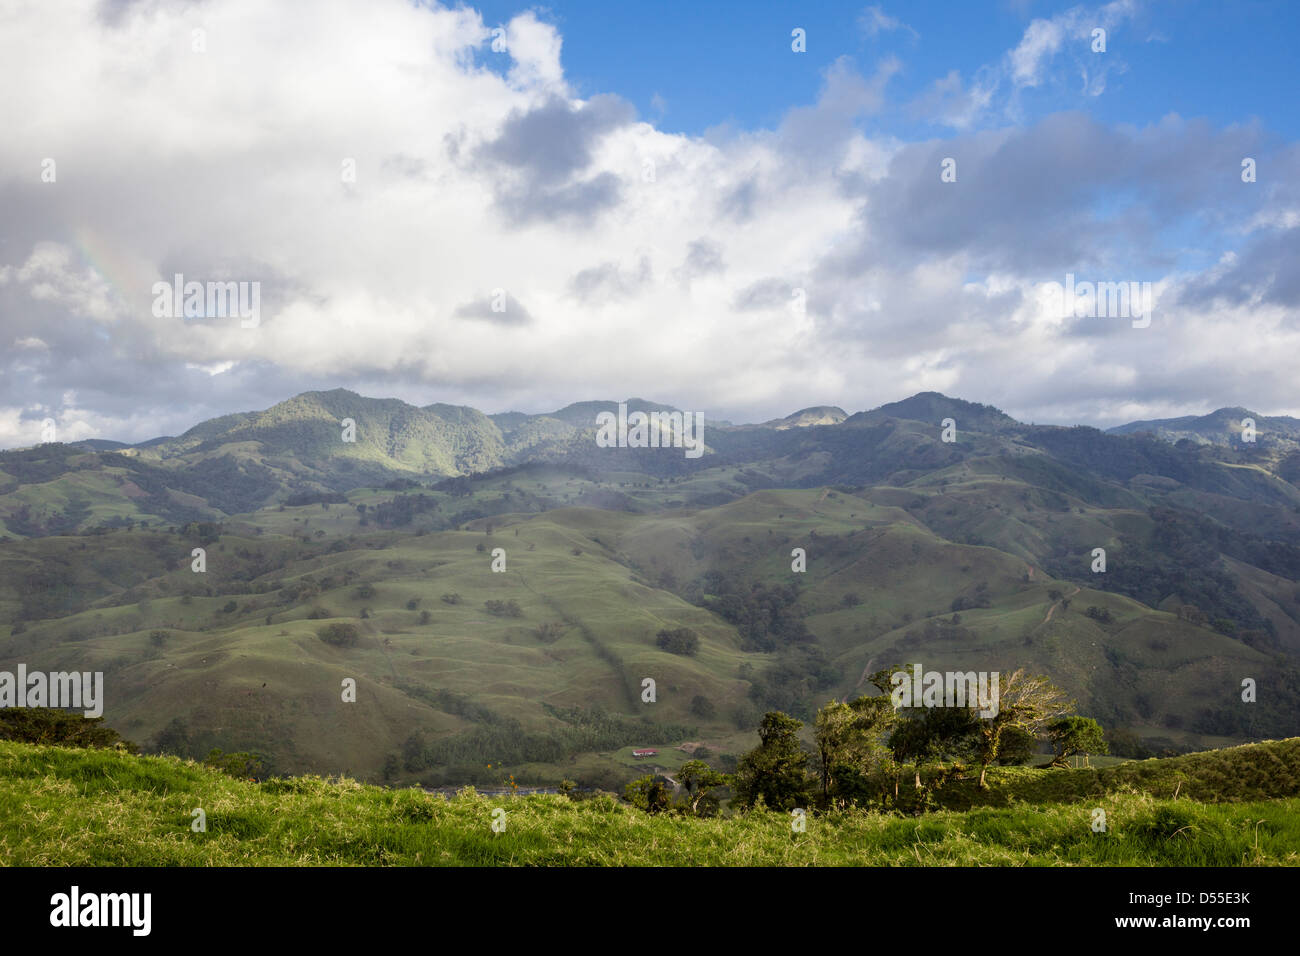 Mountainous countryside in the Lake Arenal area, Alajuela province, Costa Rica. - Stock Image